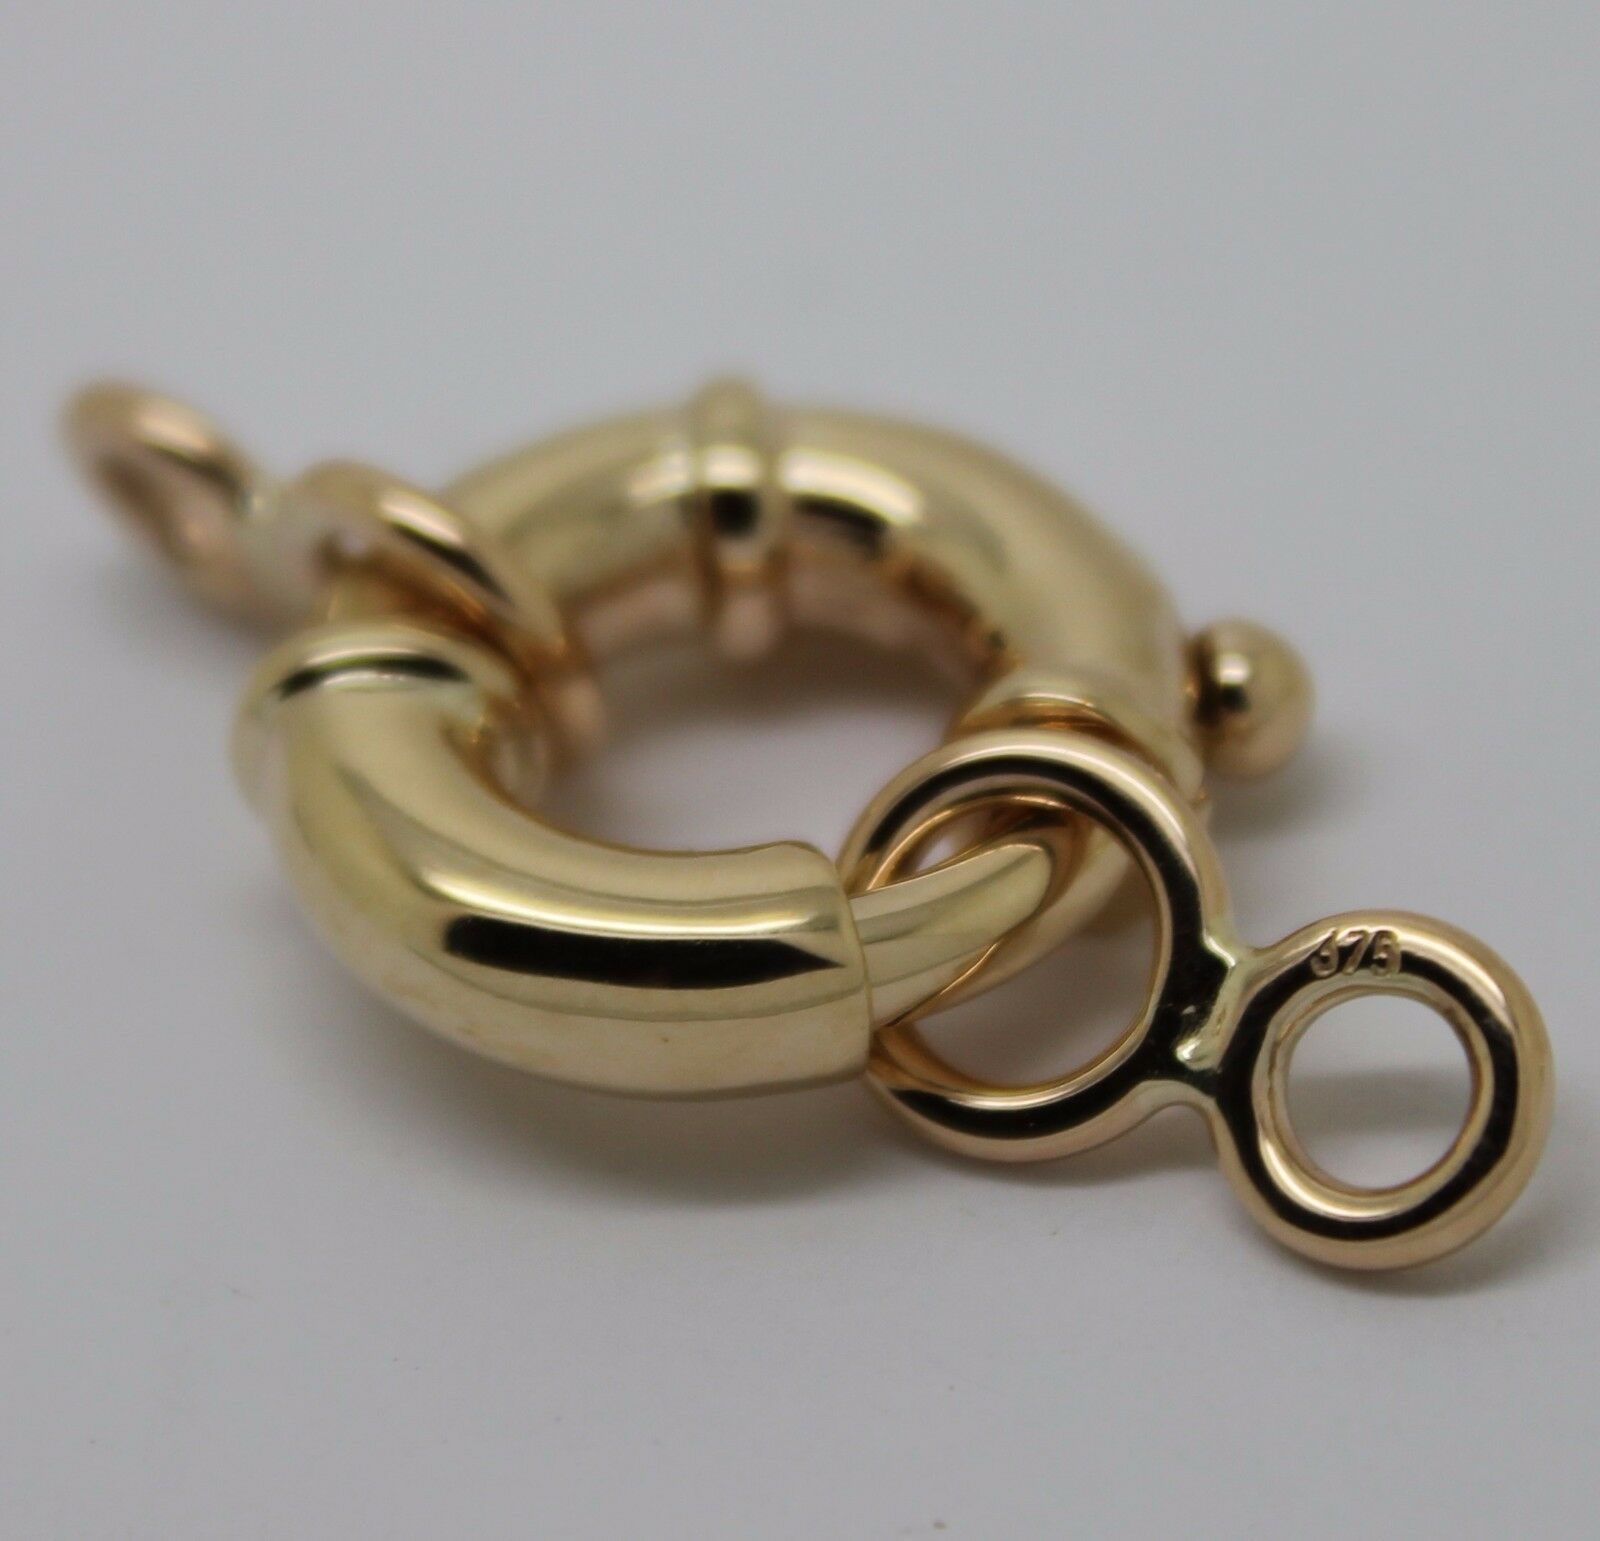 9ct Yellow Gold 6mm Diameter Bolt Ring Jewellery Clasp with Open Jump Ring